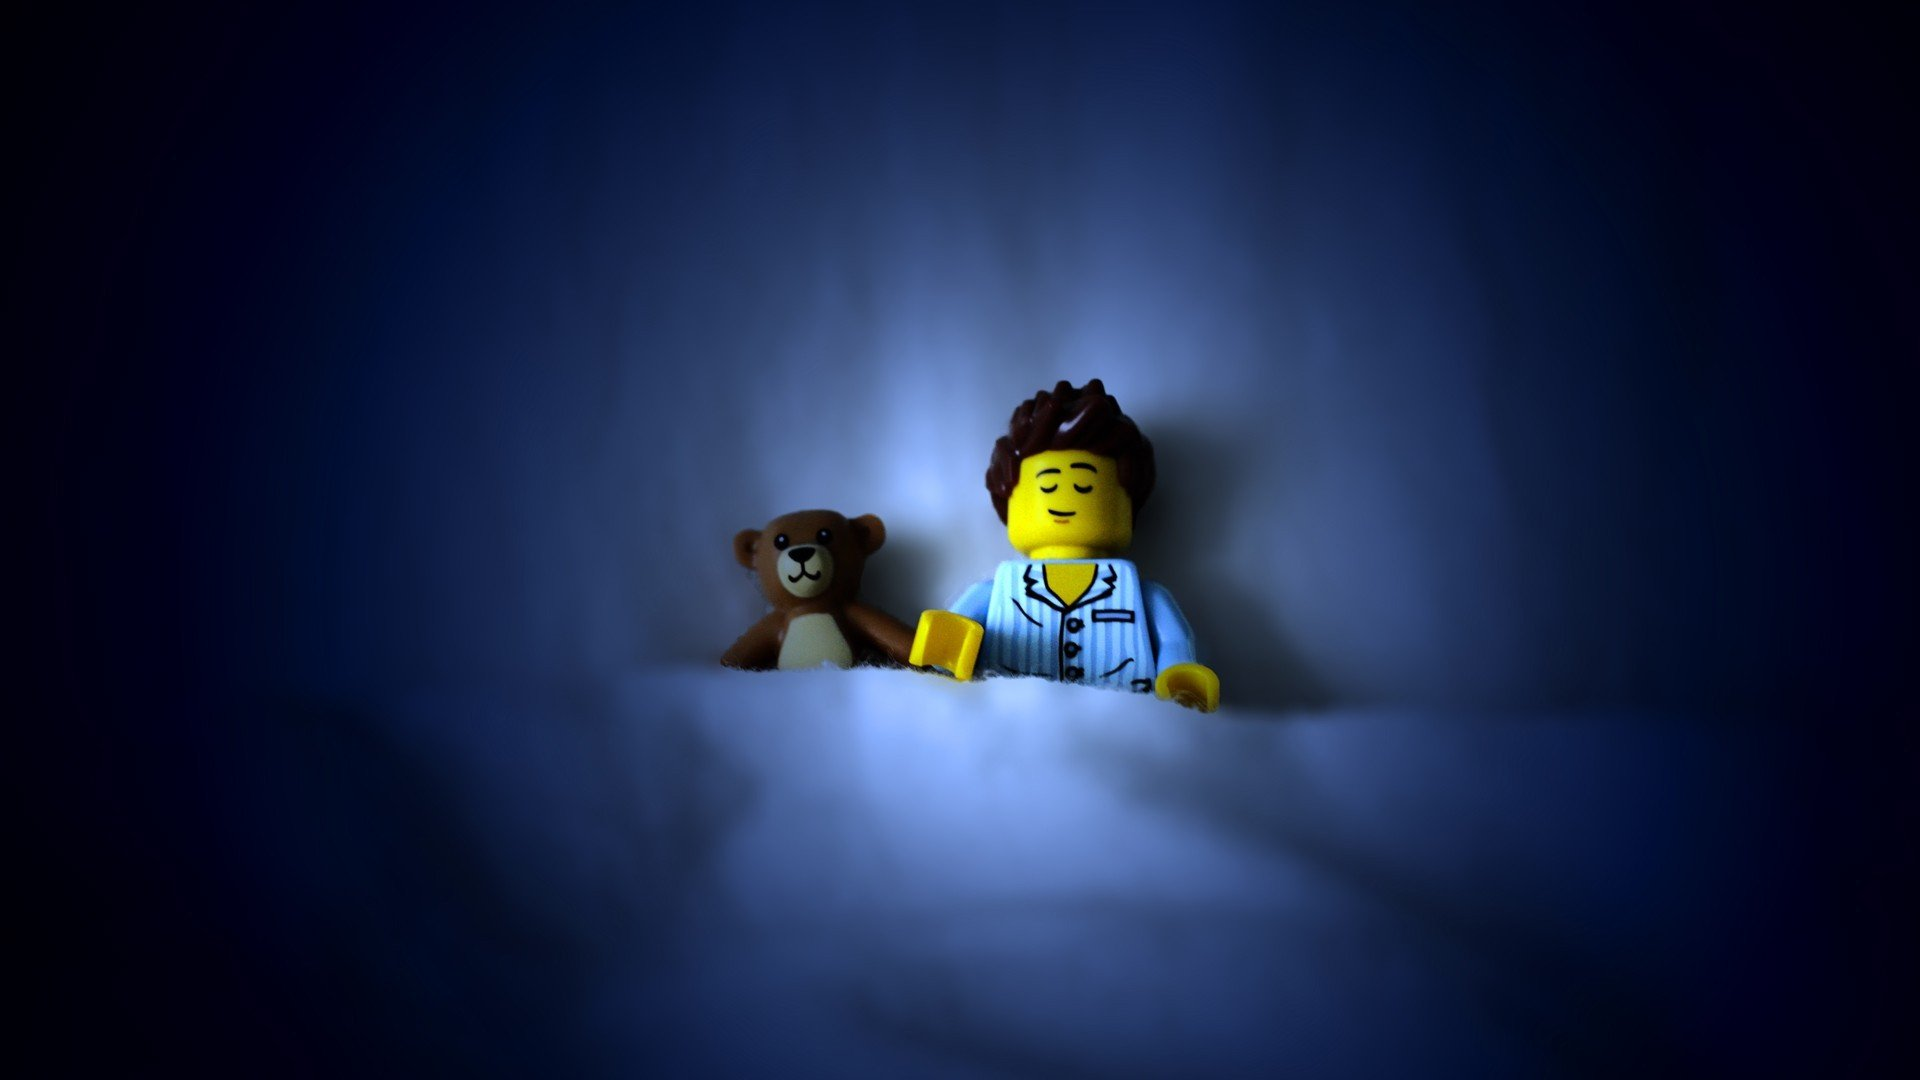 Lego Sleeping Hd Wallpapers Desktop And Mobile Images Photos